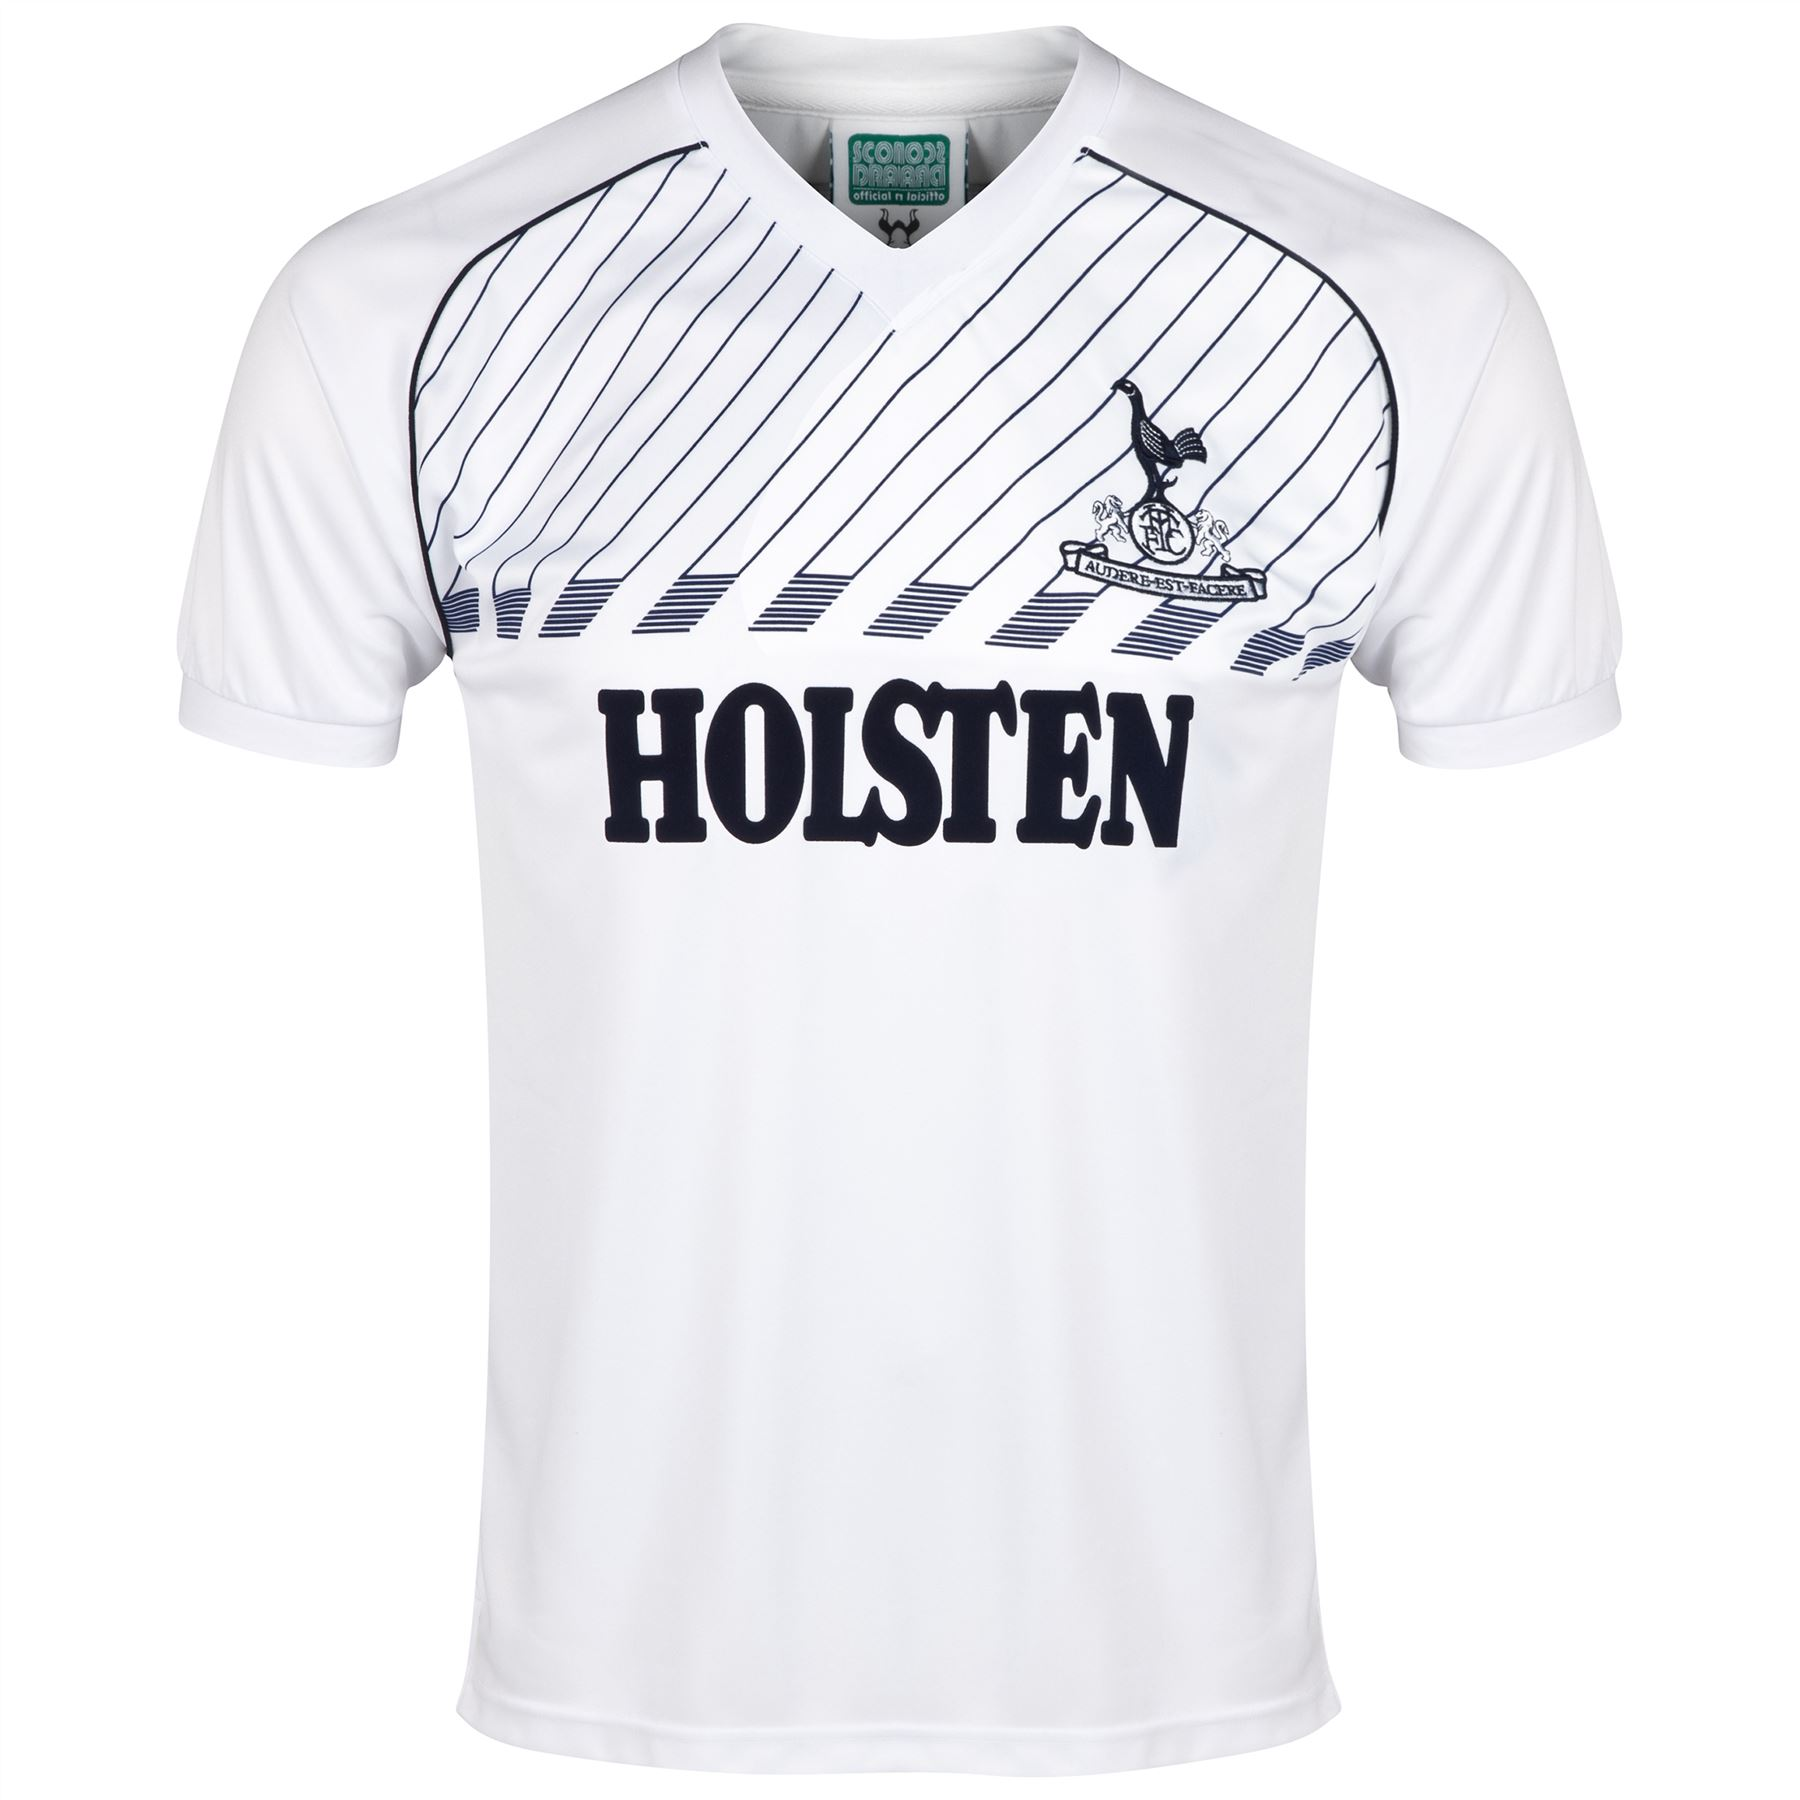 Tottenham: Score Draw Retro Football Tottenham Hotspur 1986 Short